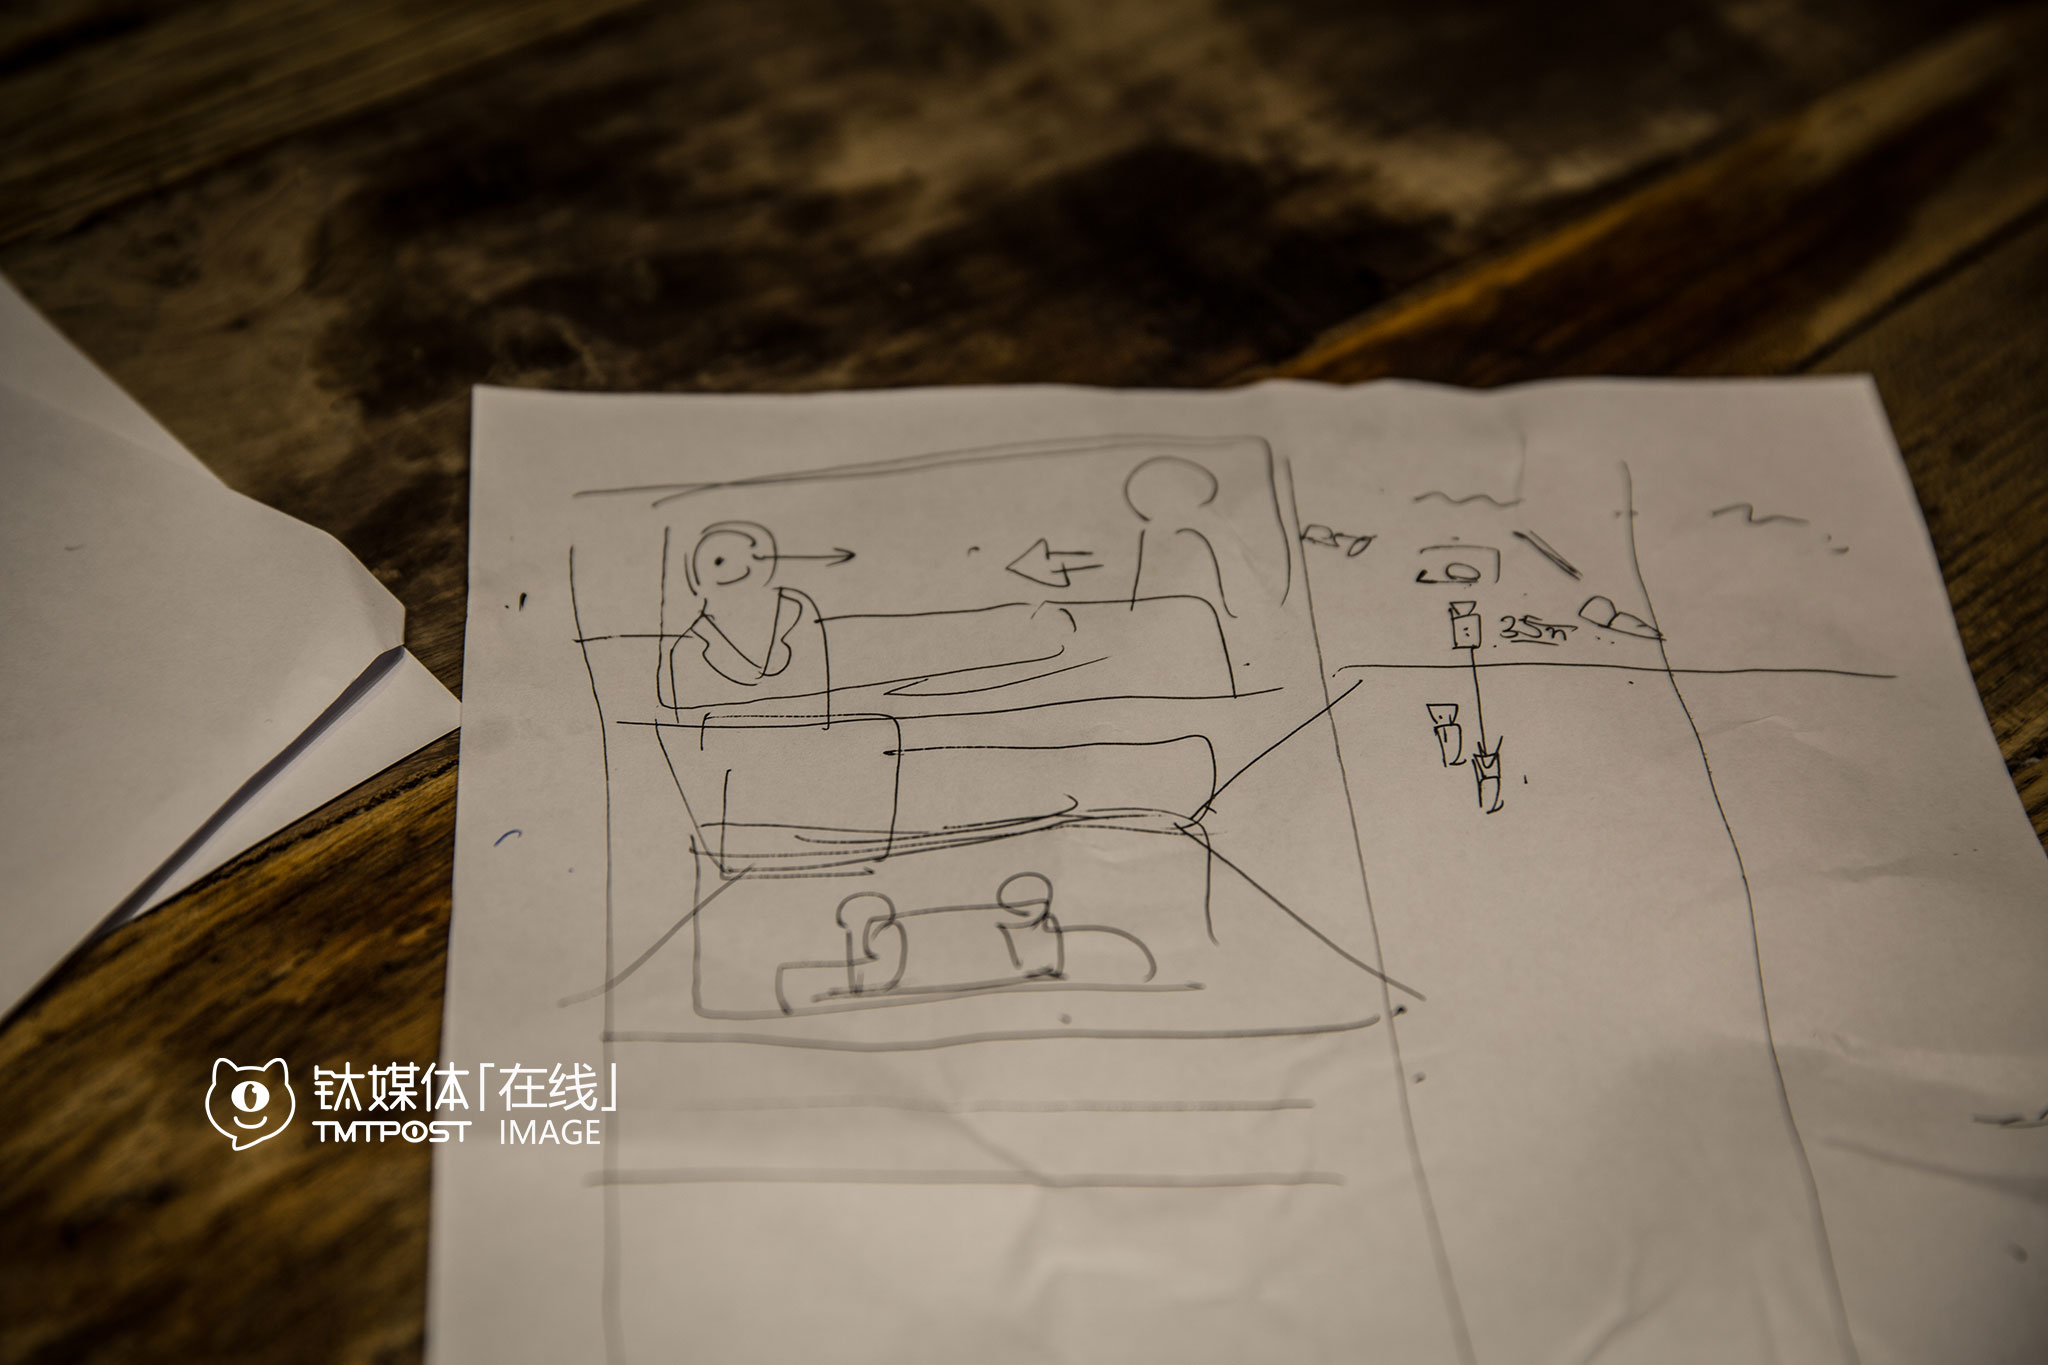 In the meeting room, the scriptwriters had been brainstorming on the story and concept.